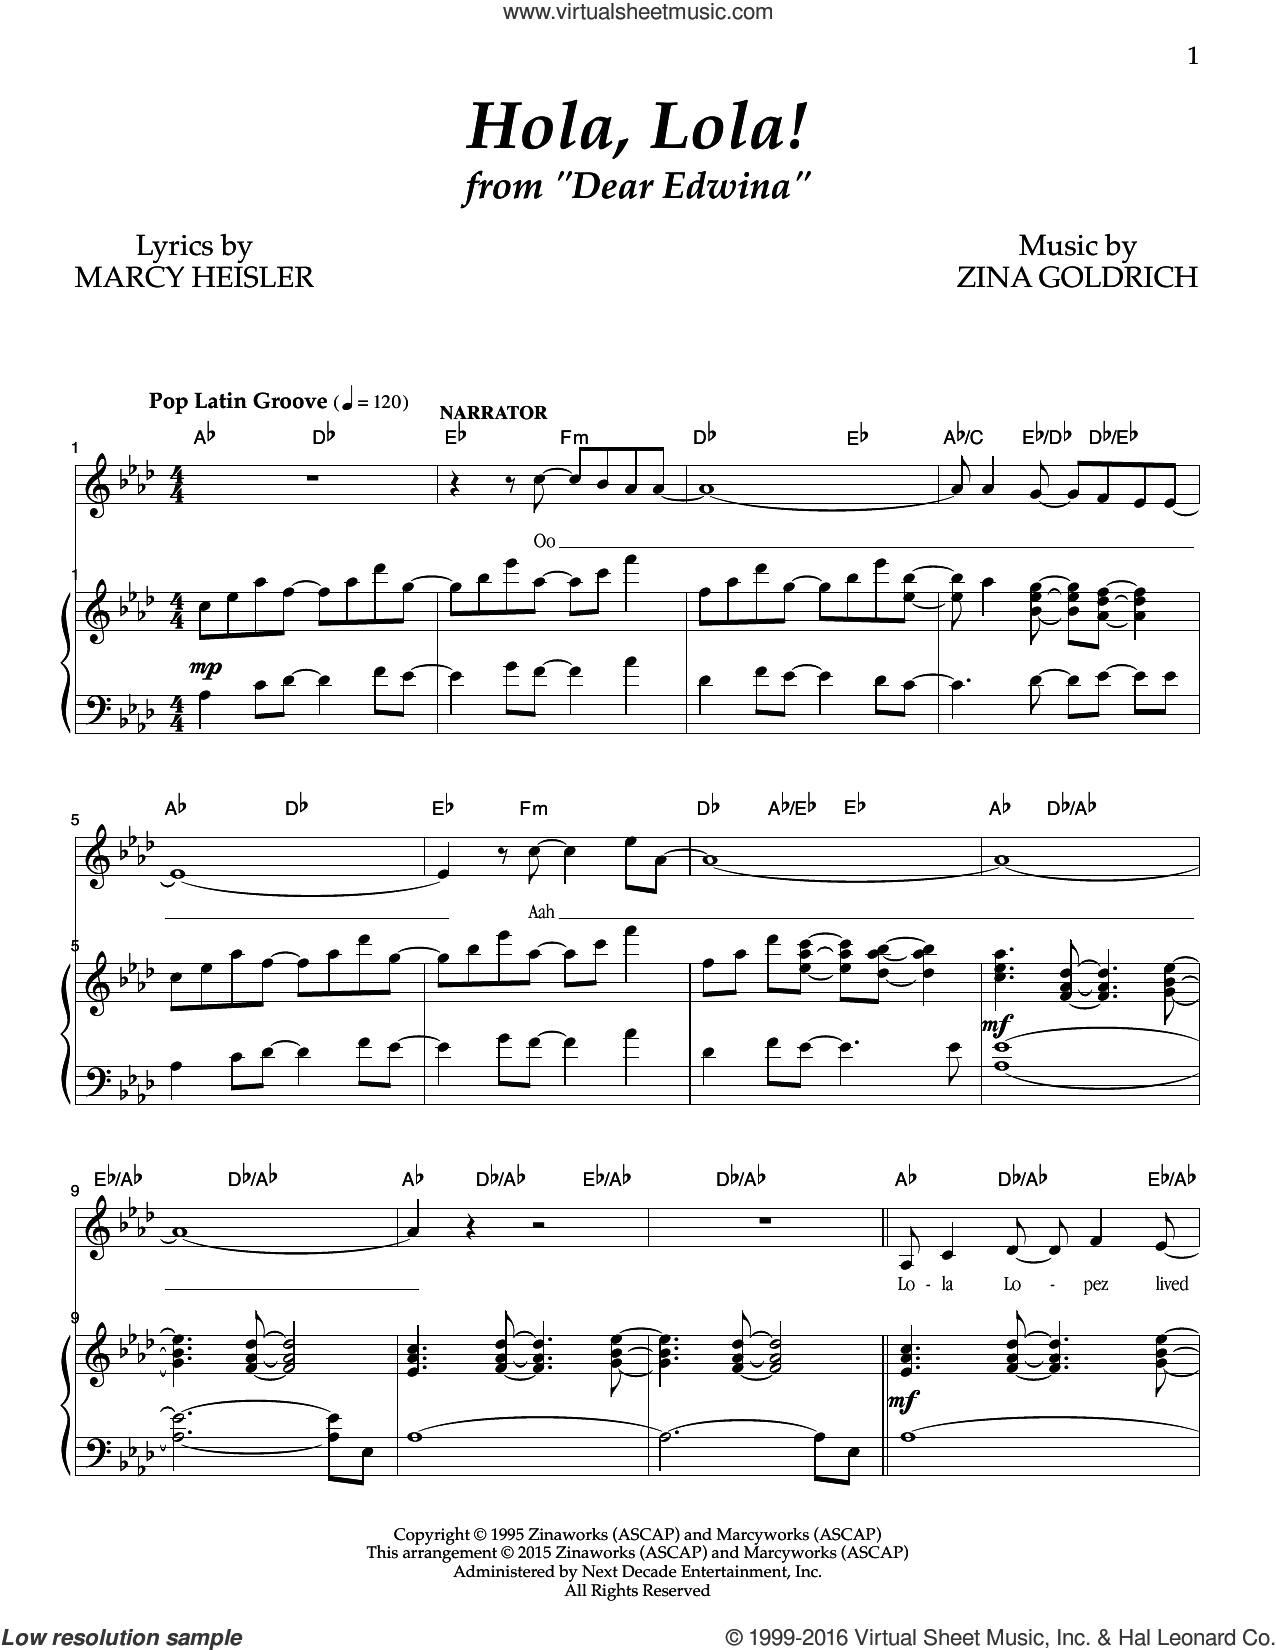 Hola, Lola! sheet music for voice and piano by Zina Goldrich, Goldrich & Heisler and Marcy Heisler. Score Image Preview.